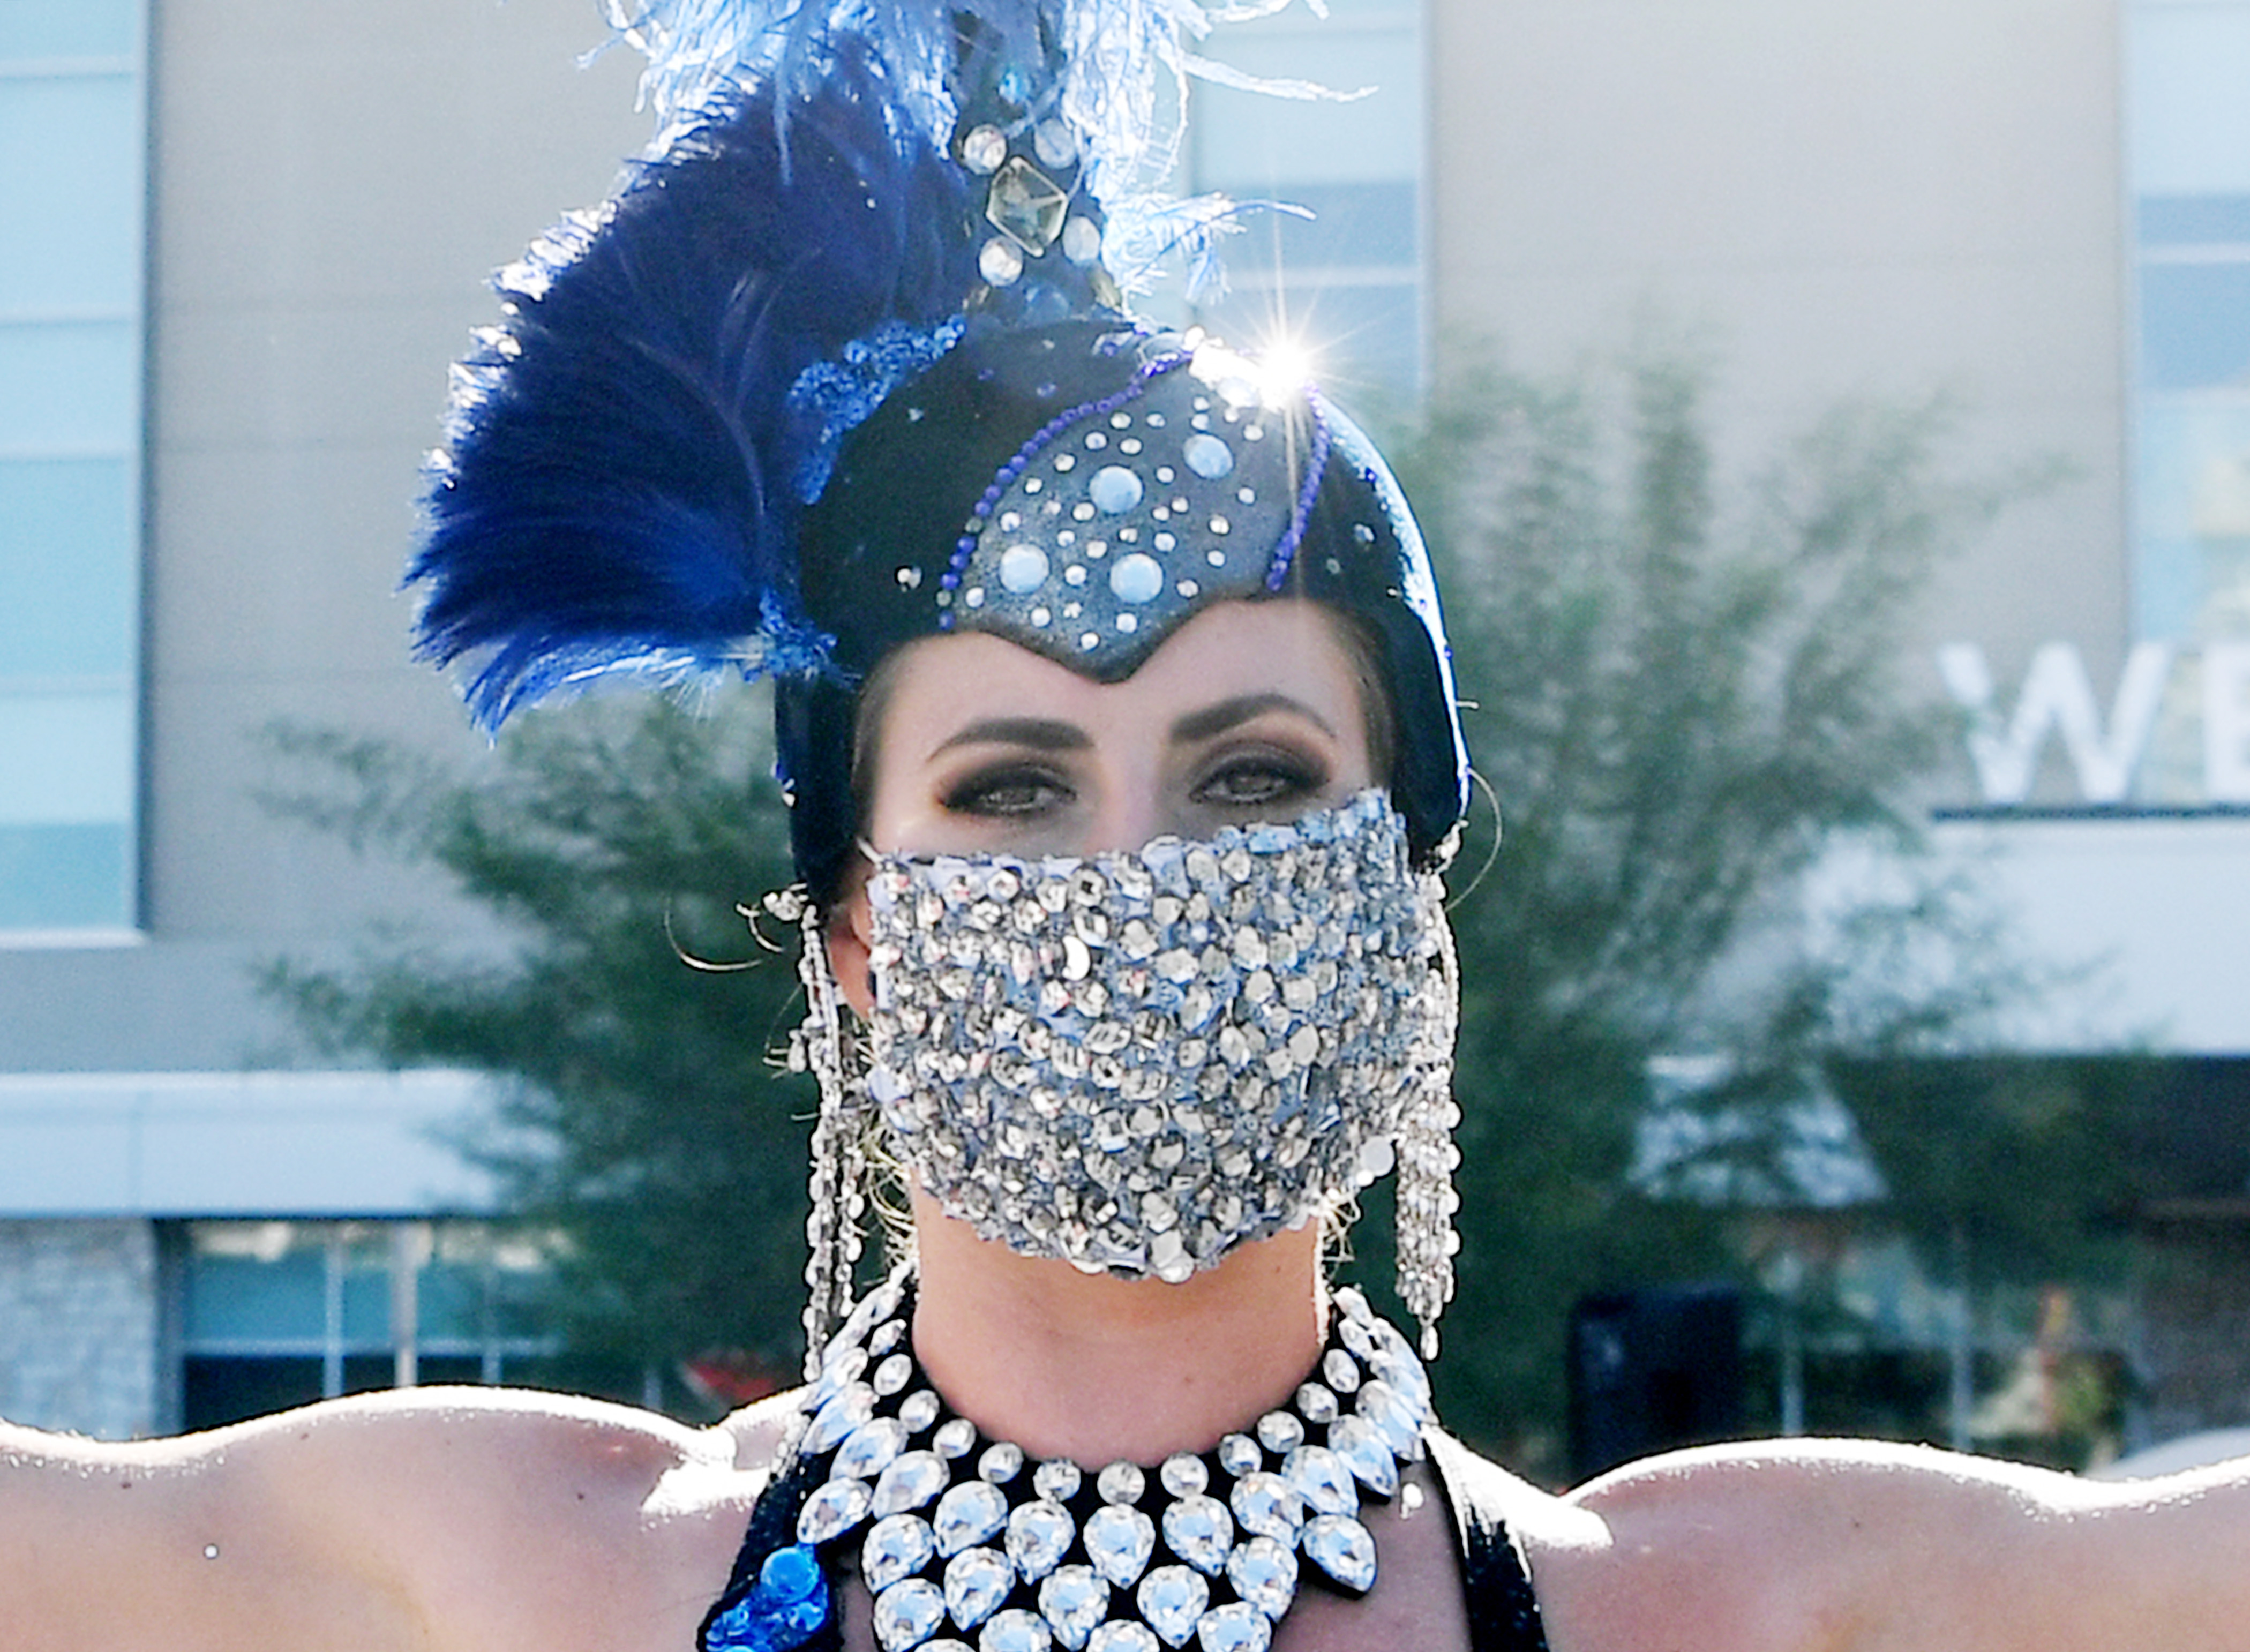 Southern Nevada's Healthcare Community Teams Up With Only-In-Las Vegas Pop Up Parades & Performances To Support #MaskUpNV PSA Campaign